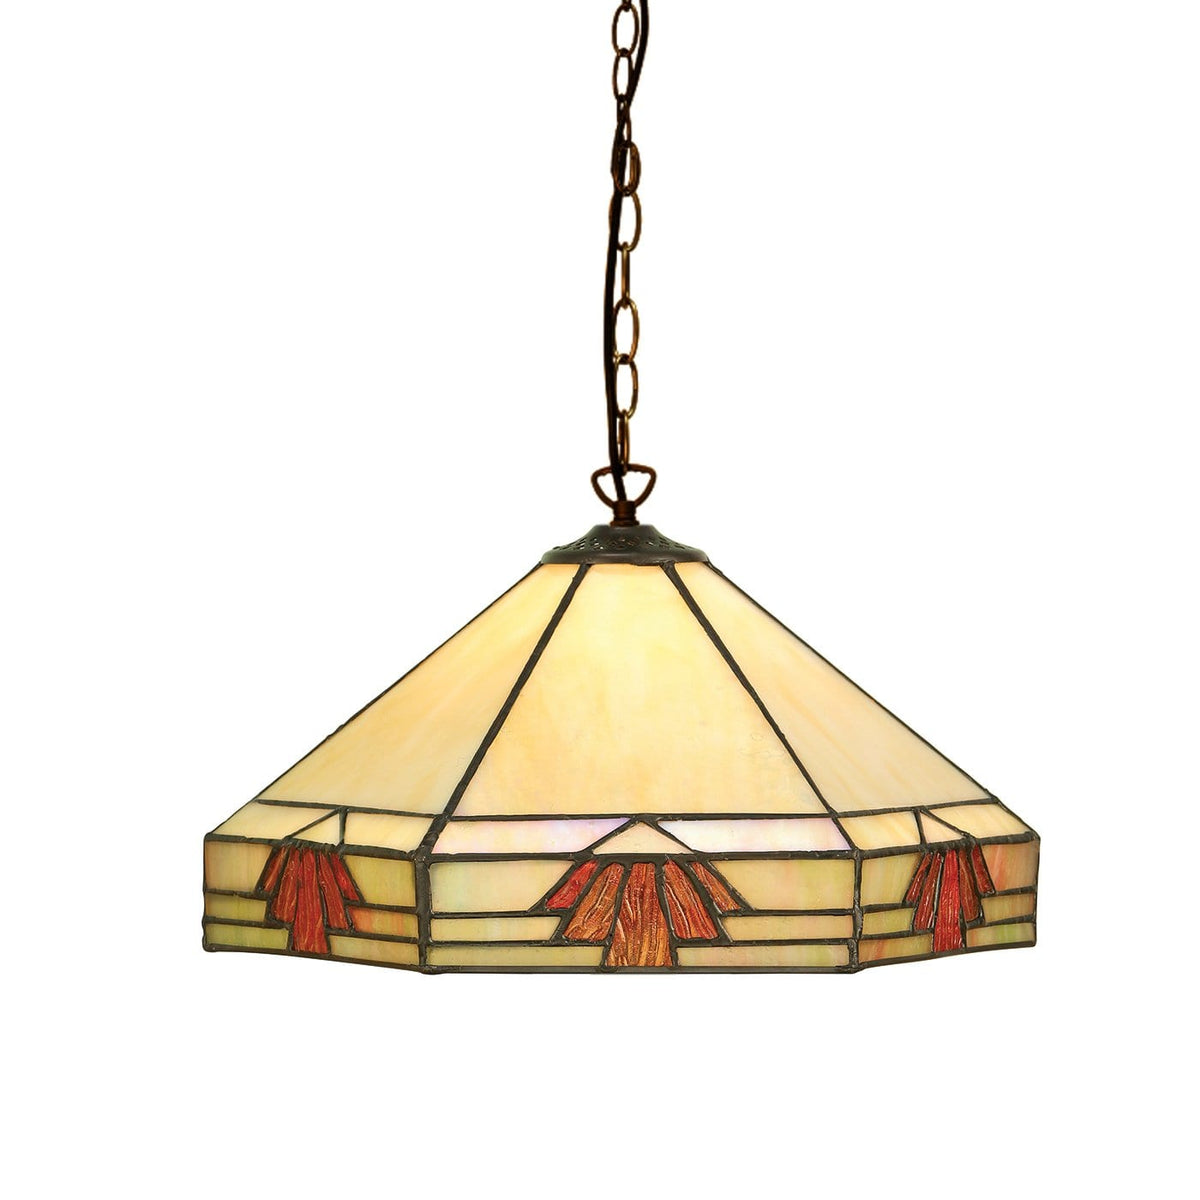 Nevada Medium Tiffany Ceiling Light by Interiors 1900